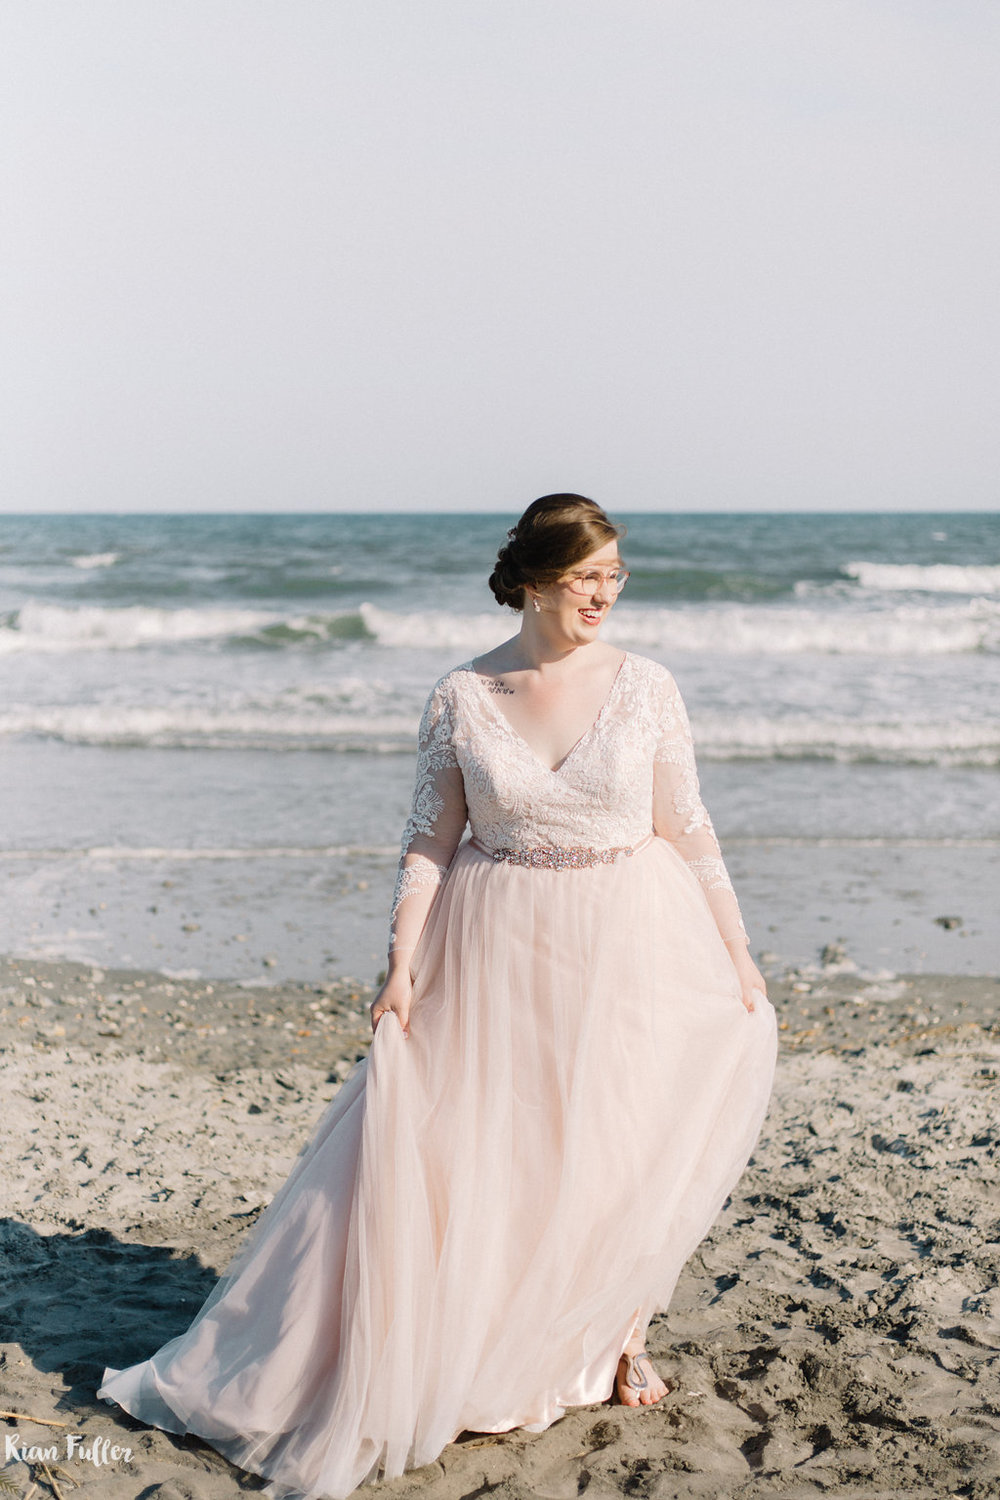 Plus Size Bride On Beach